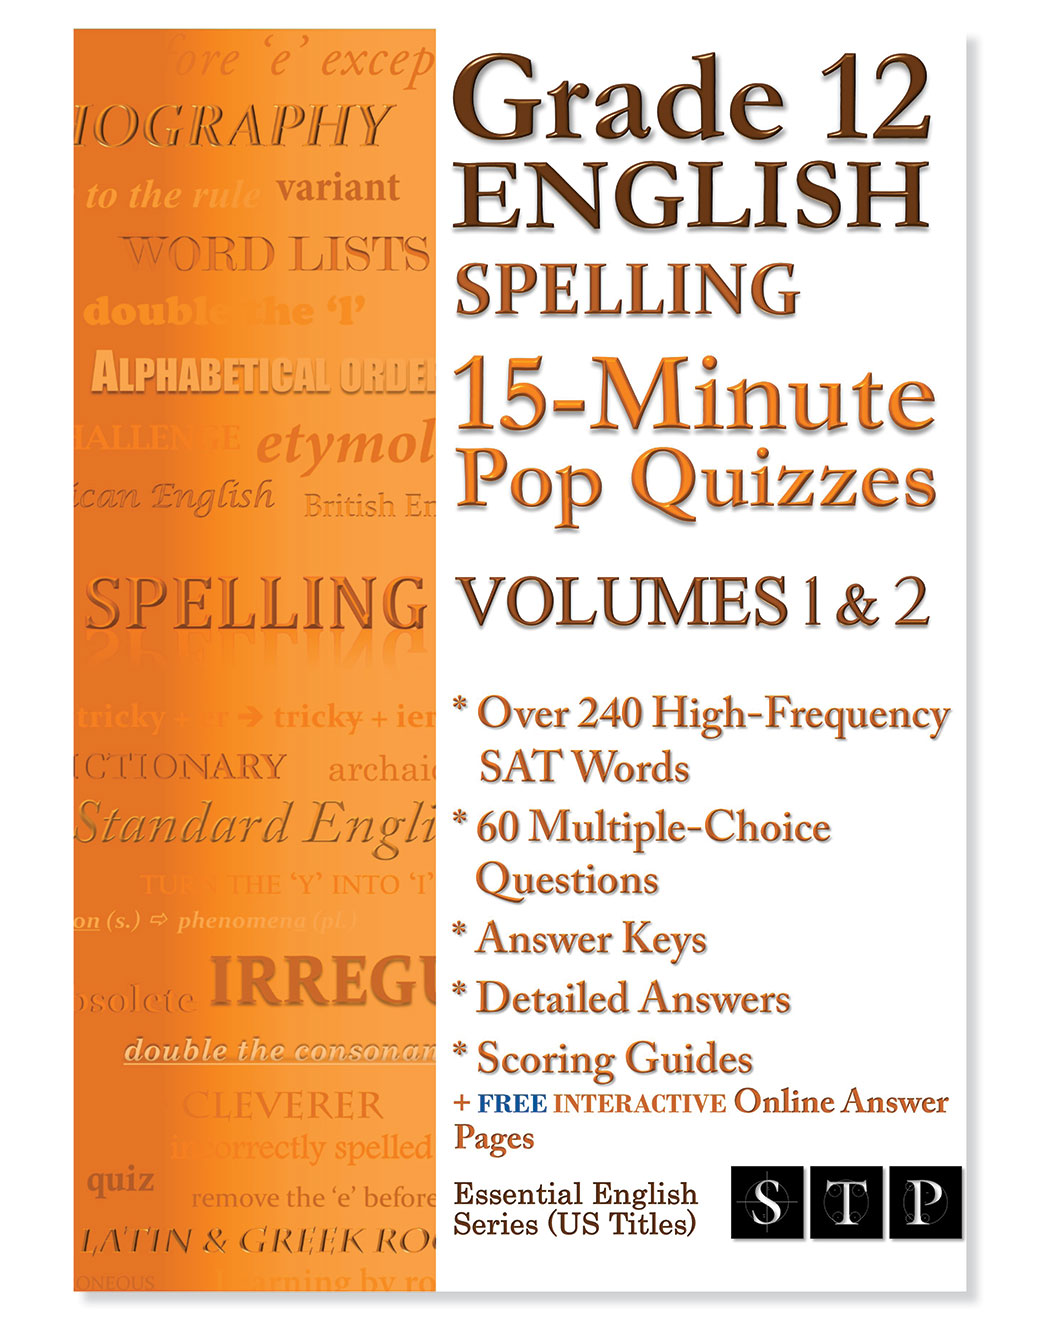 STP Books Grade 12 English Spelling 15-Minute Pop Quizzes Volumes 1 & 2